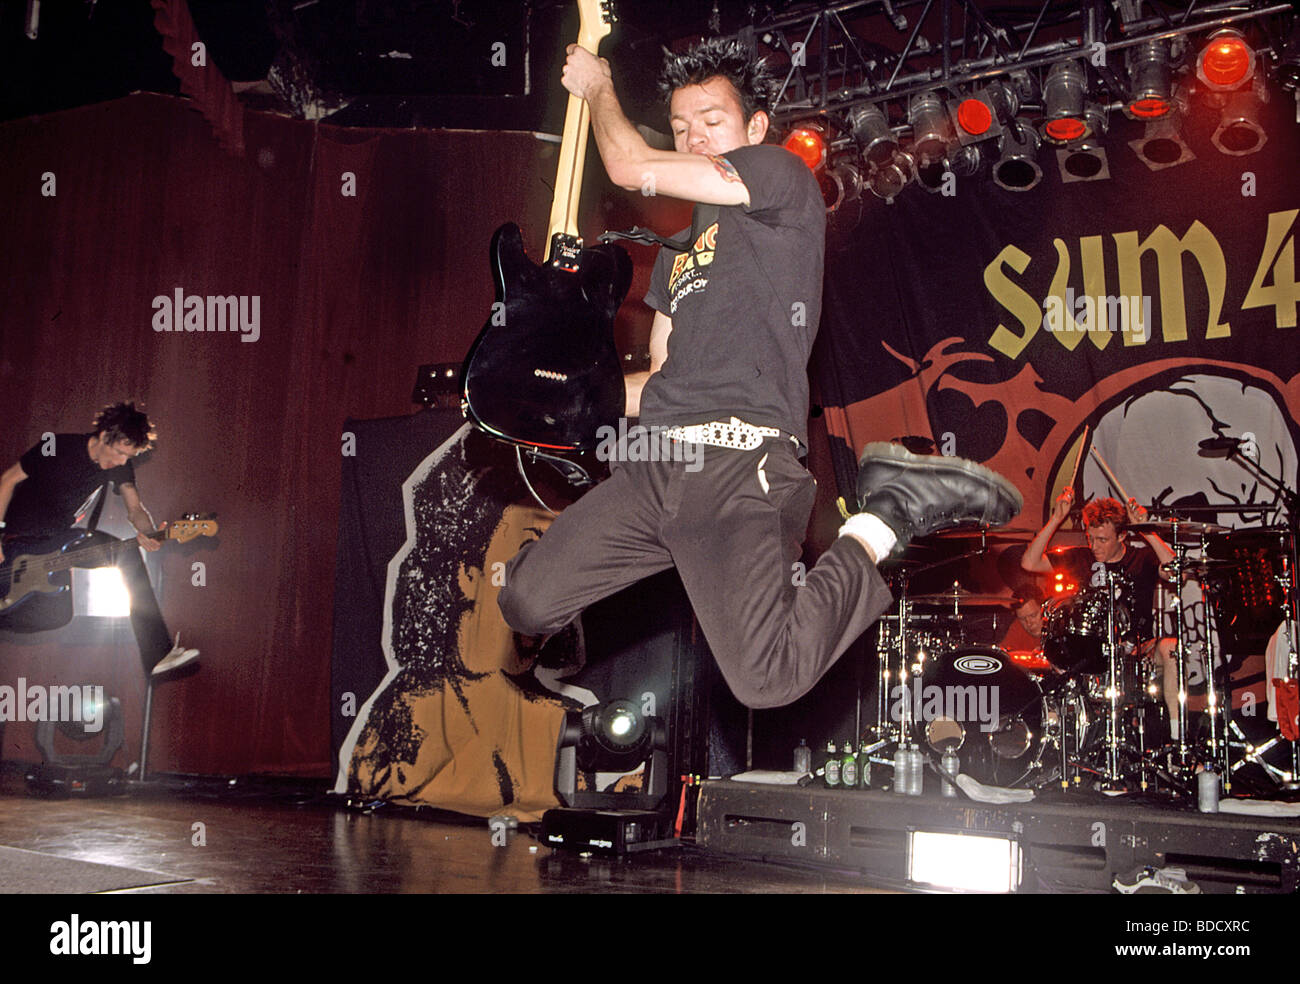 SUM 41 - Candian punk group in April 2003 with Deryck Whibley - Stock Image